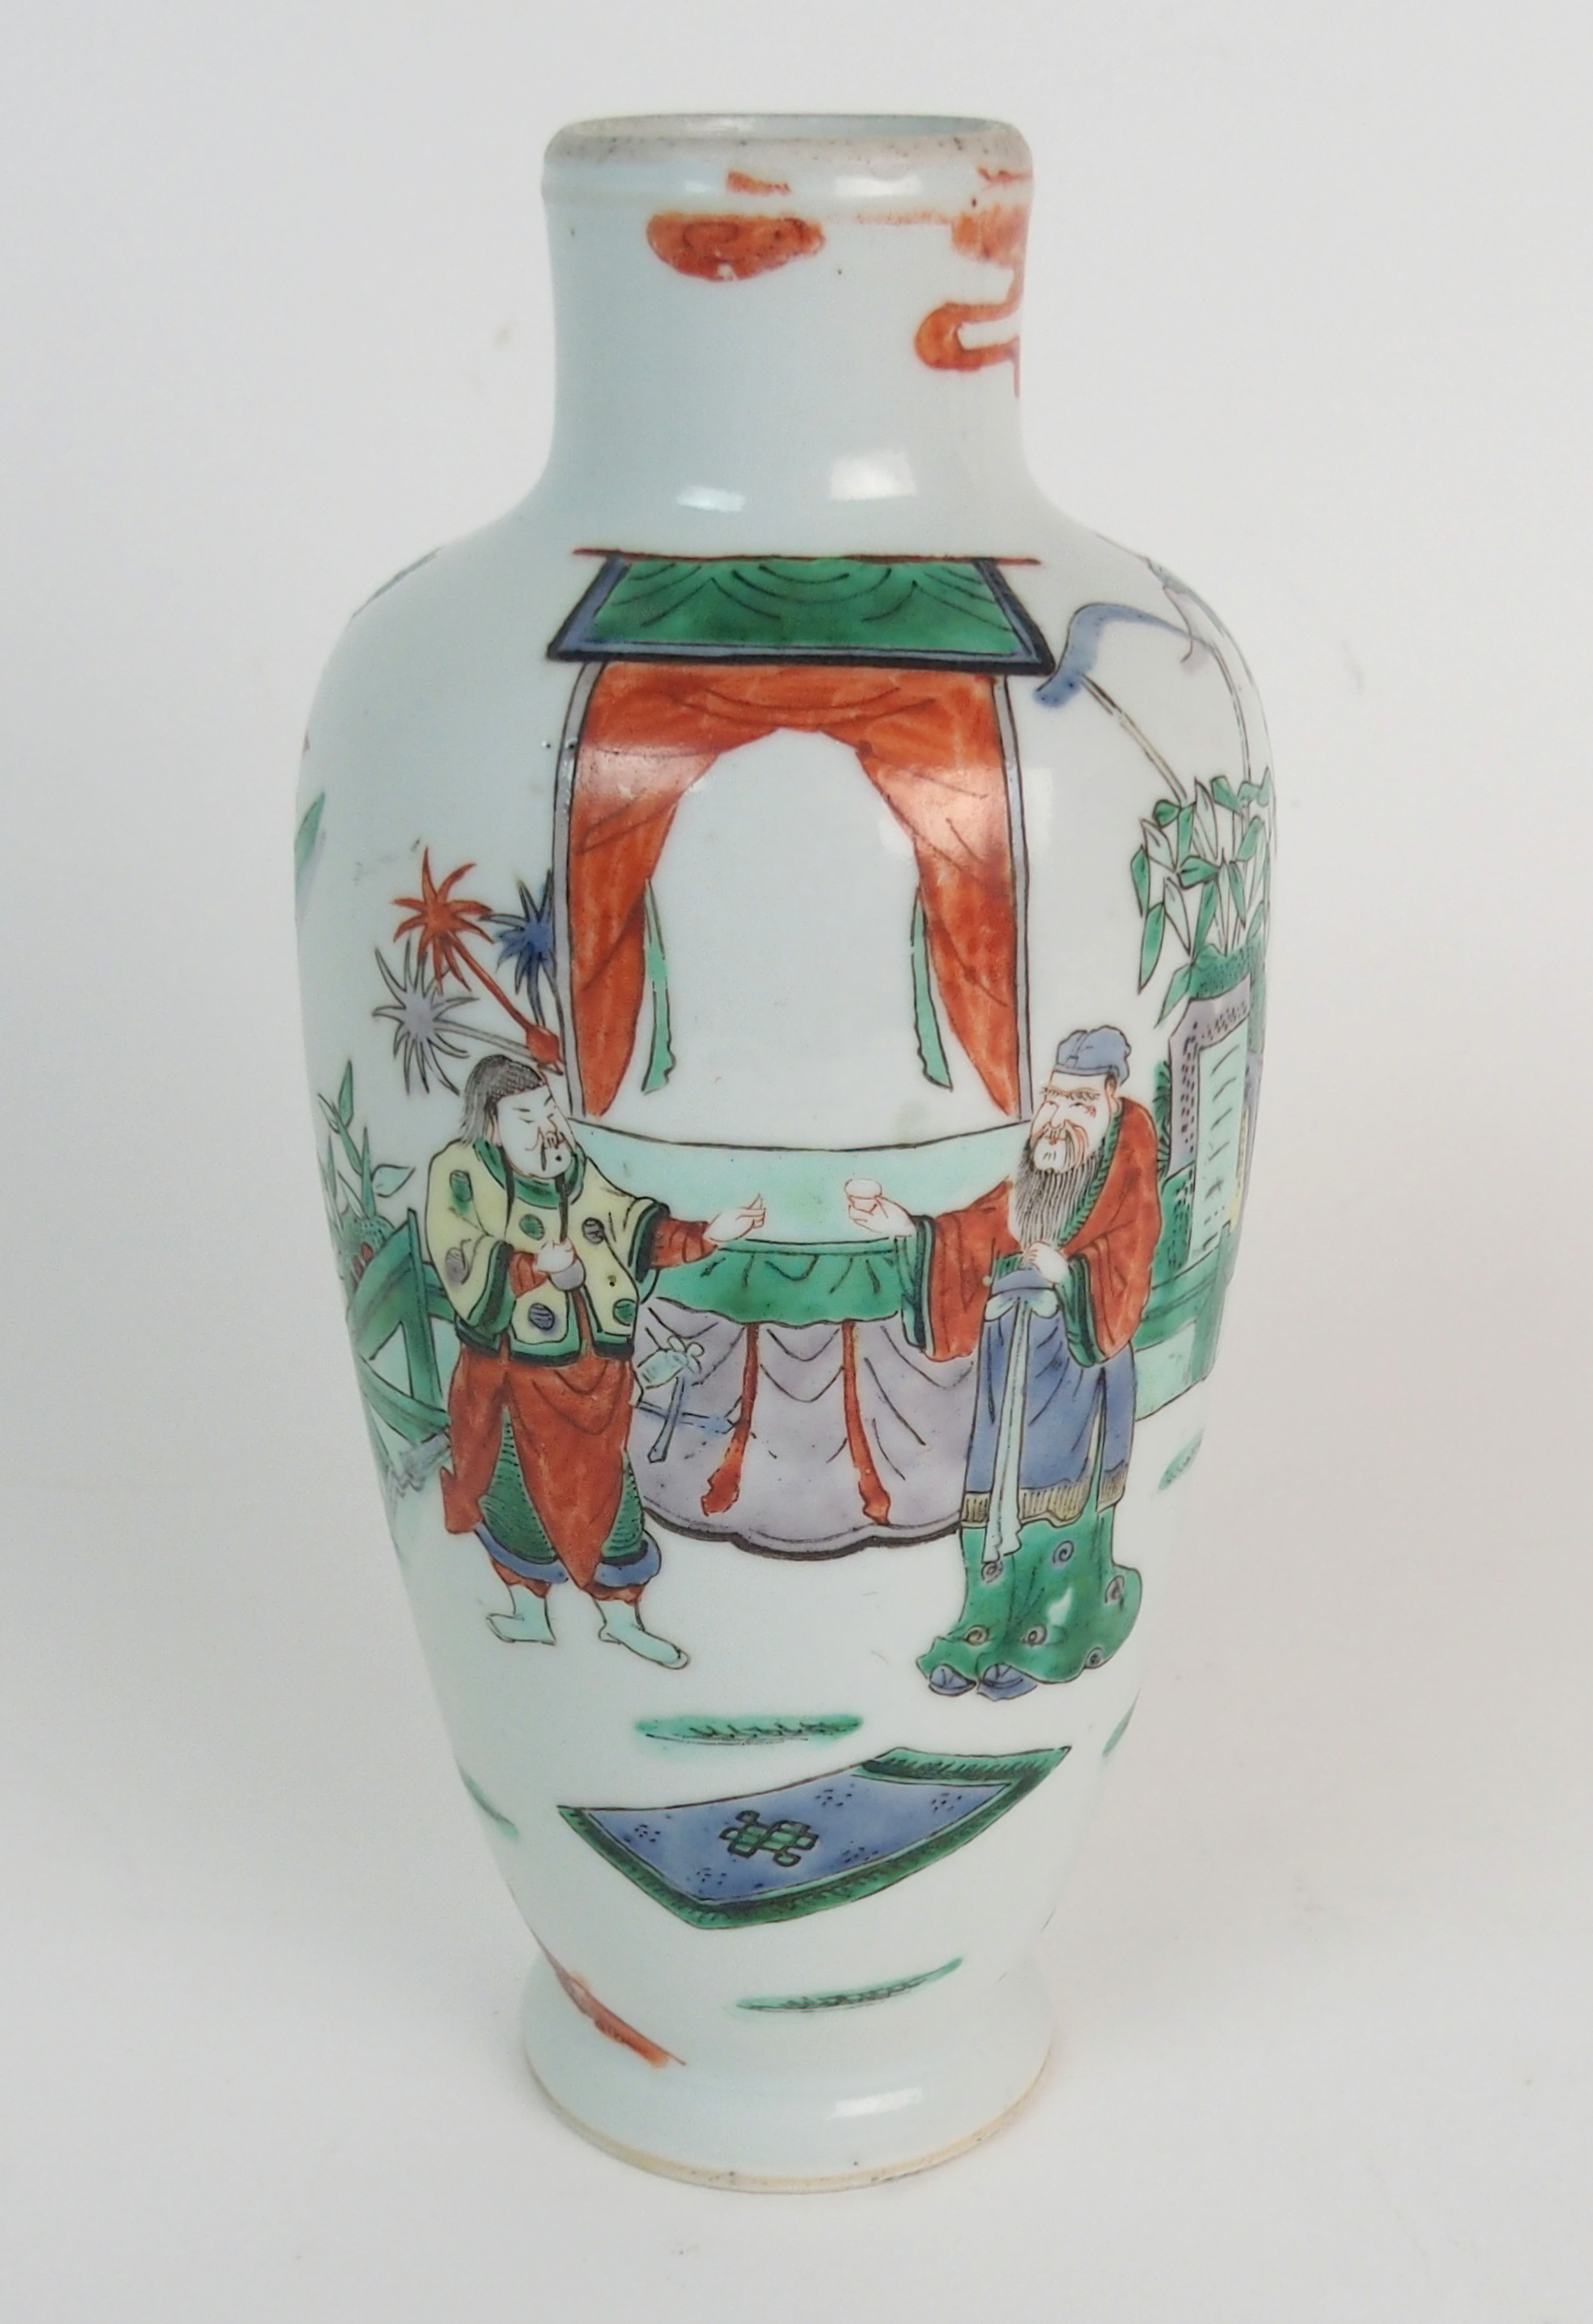 Lot 32 - A CHINESE WUCAI BALUSTER VASE painted with noblemen and attendants in a garden, 23cm high